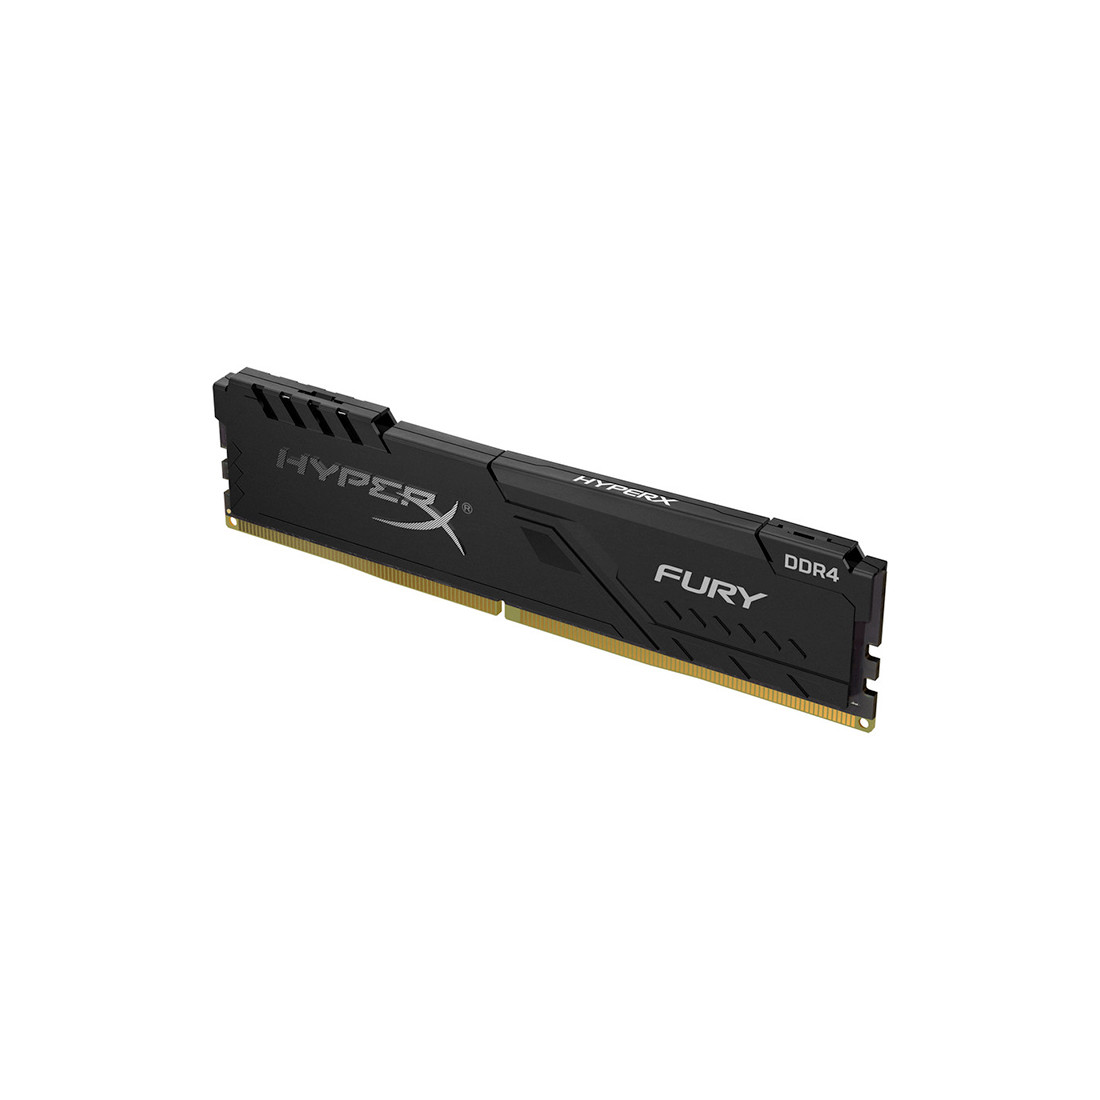 Модуль памяти Kingston HyperX Fury HX432C16FB3/8 DDR4 8G 3200MHz